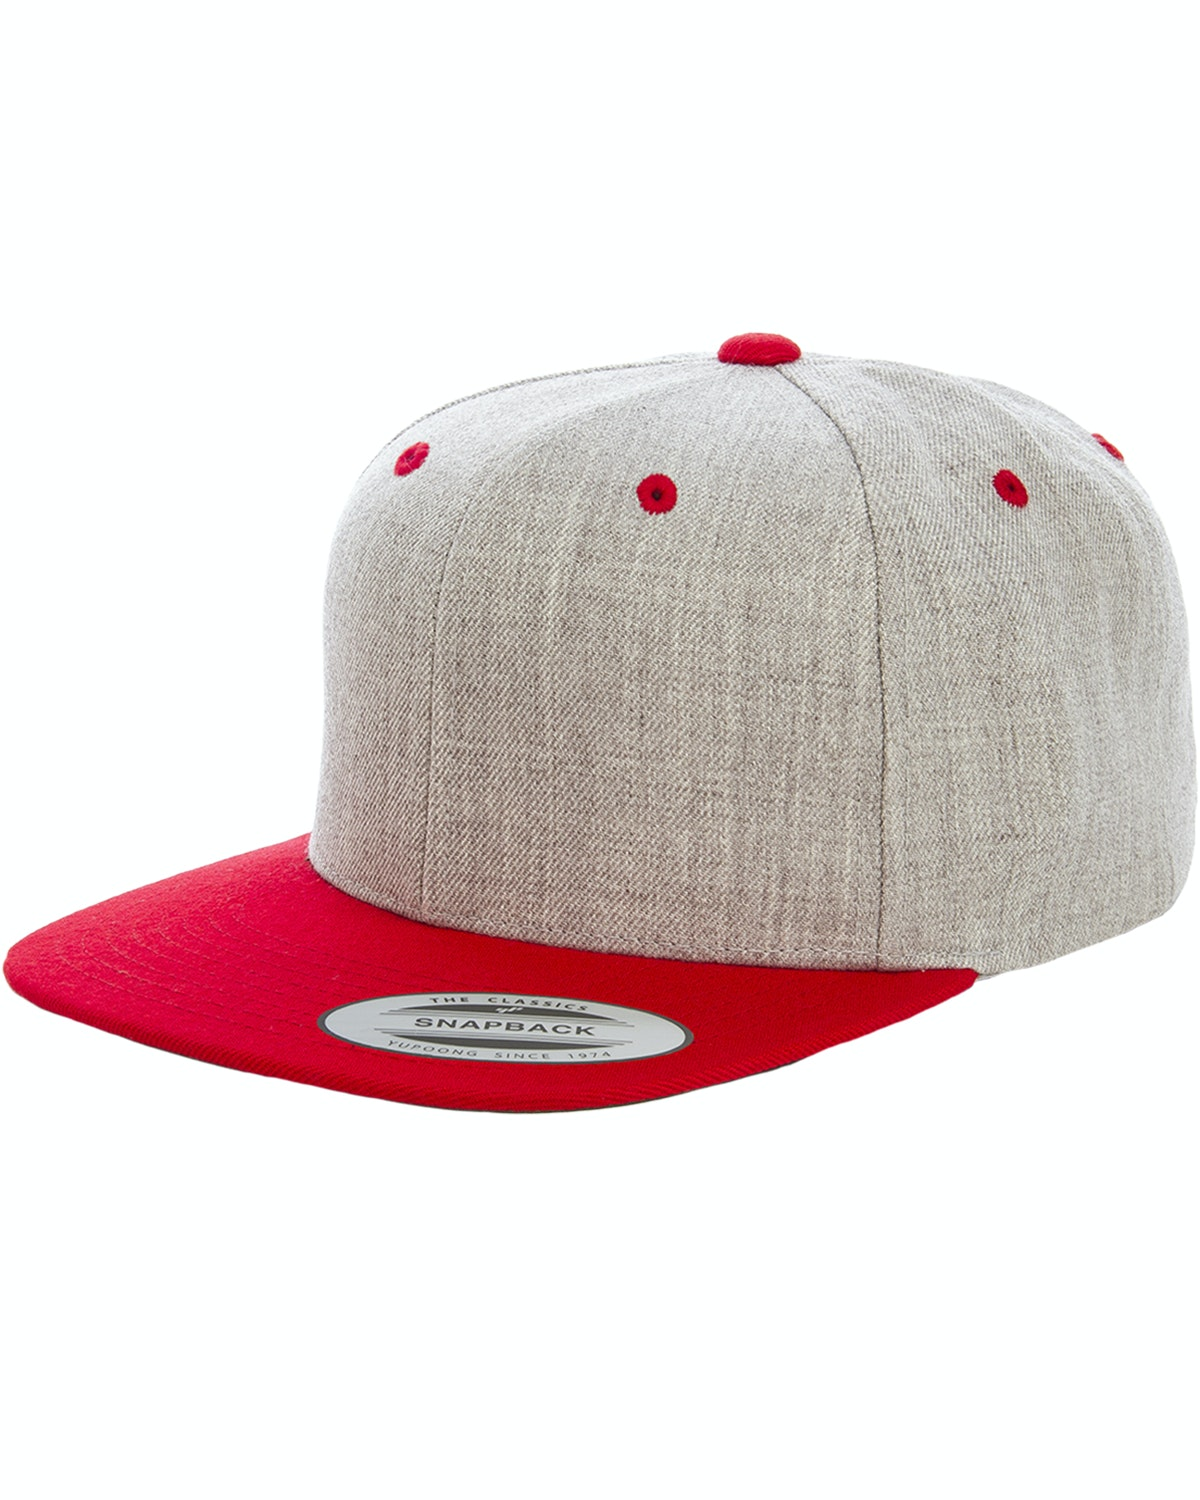 Yupoong 6089MT Heather/Red